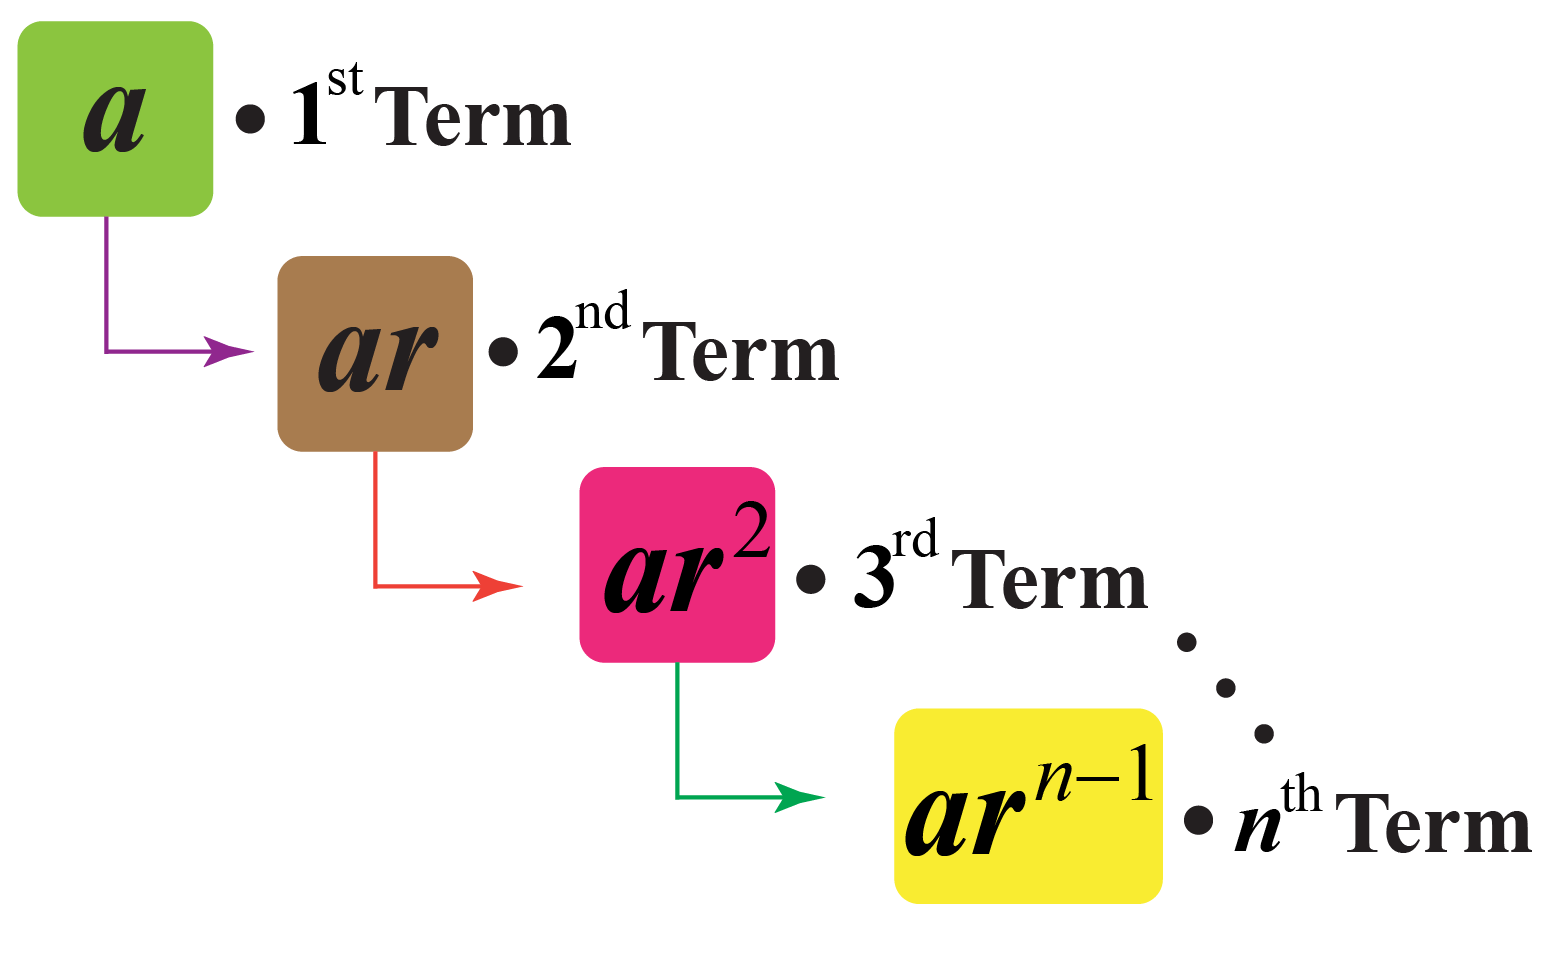 hight resolution of Nth term of GP   Geometric Progression   Solved Examples - Cuemath